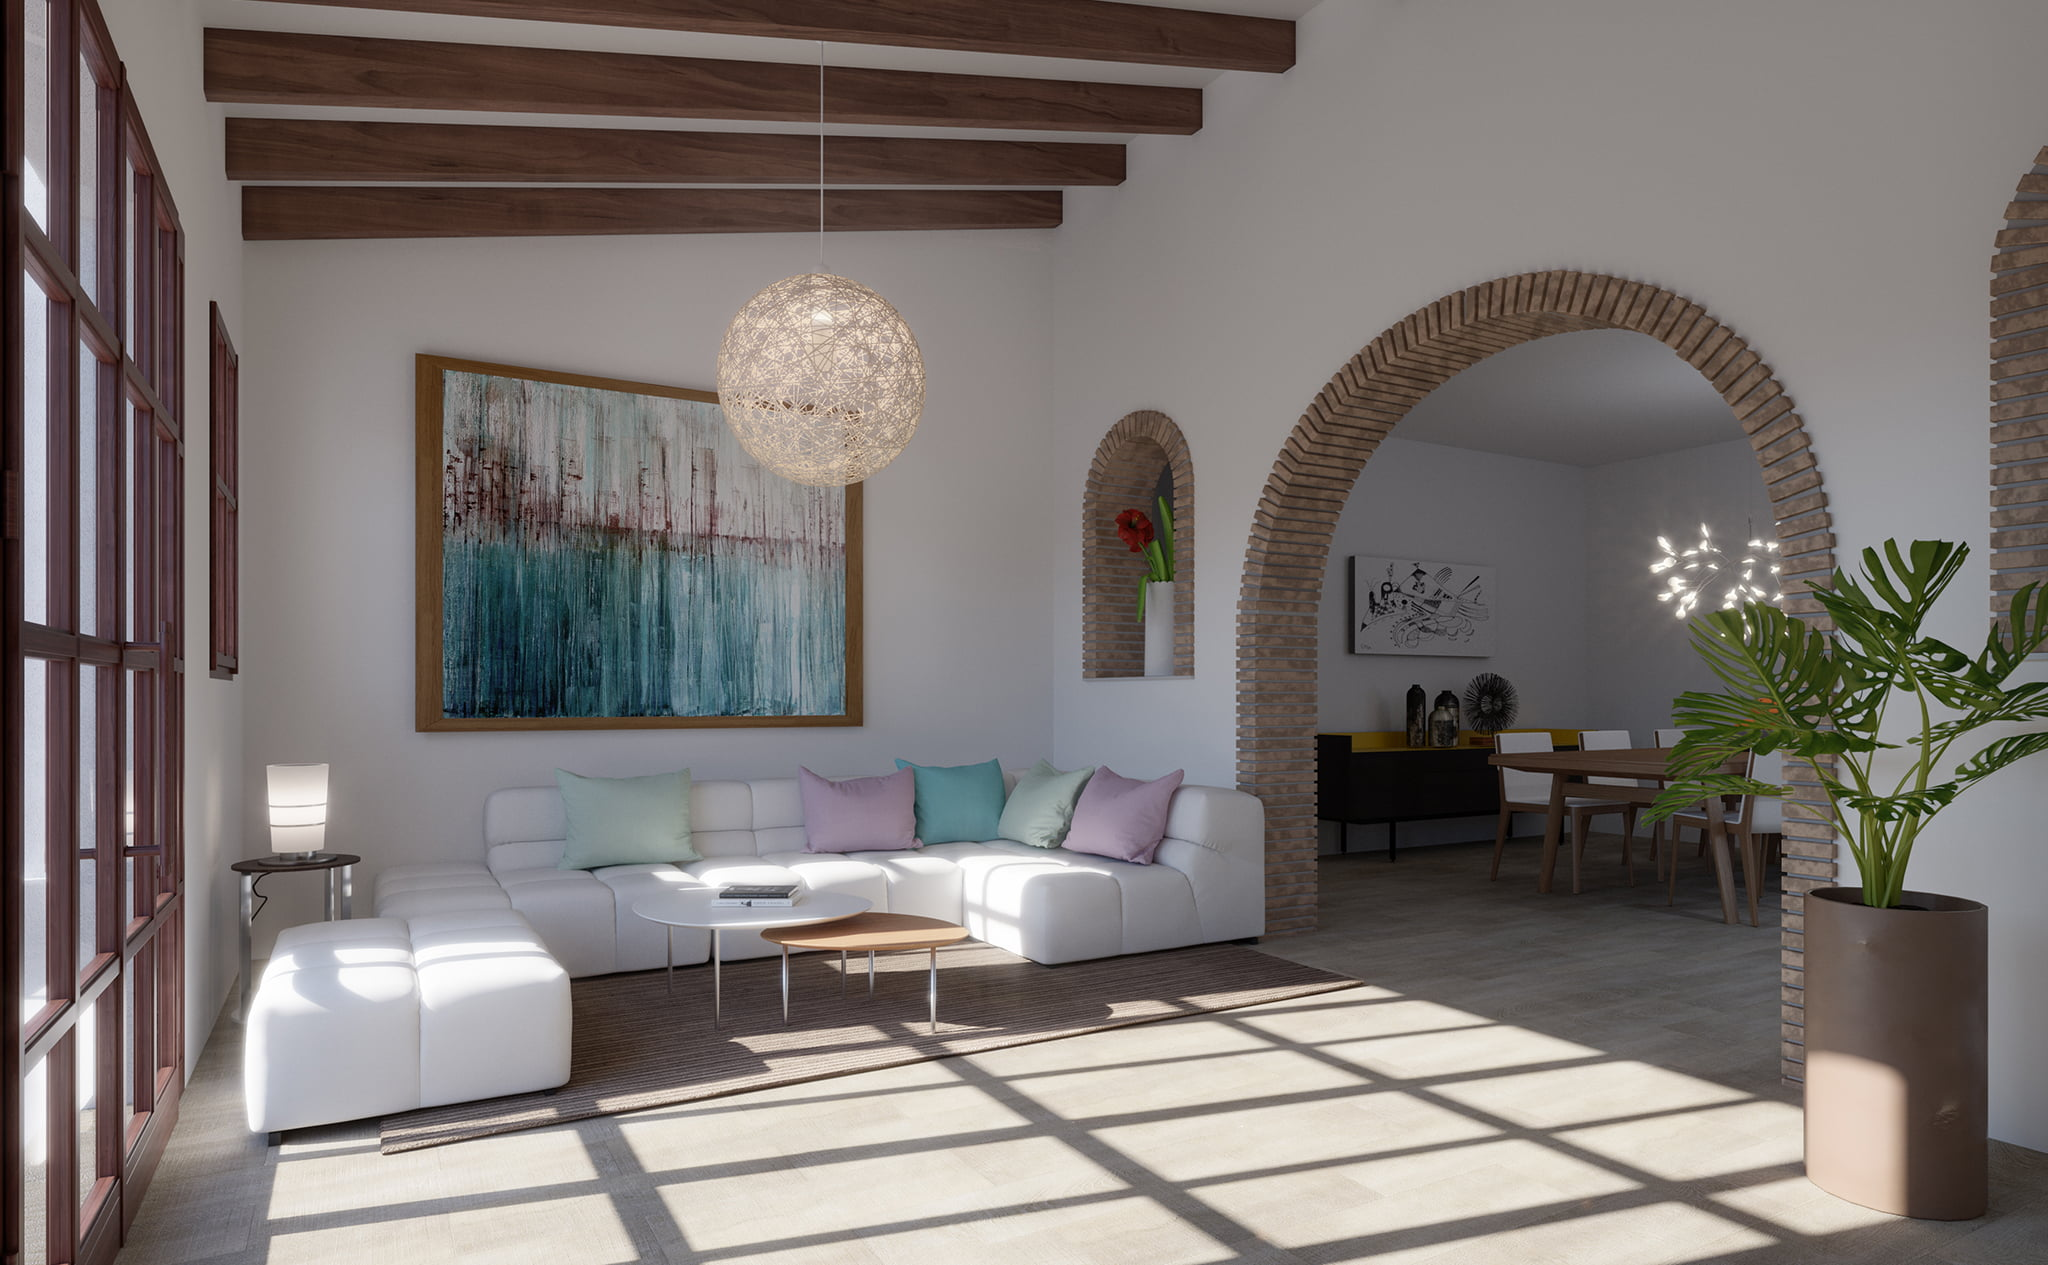 Salon d'une villa à vendre à Las Marinas à Dénia - Lucas Graf Projects